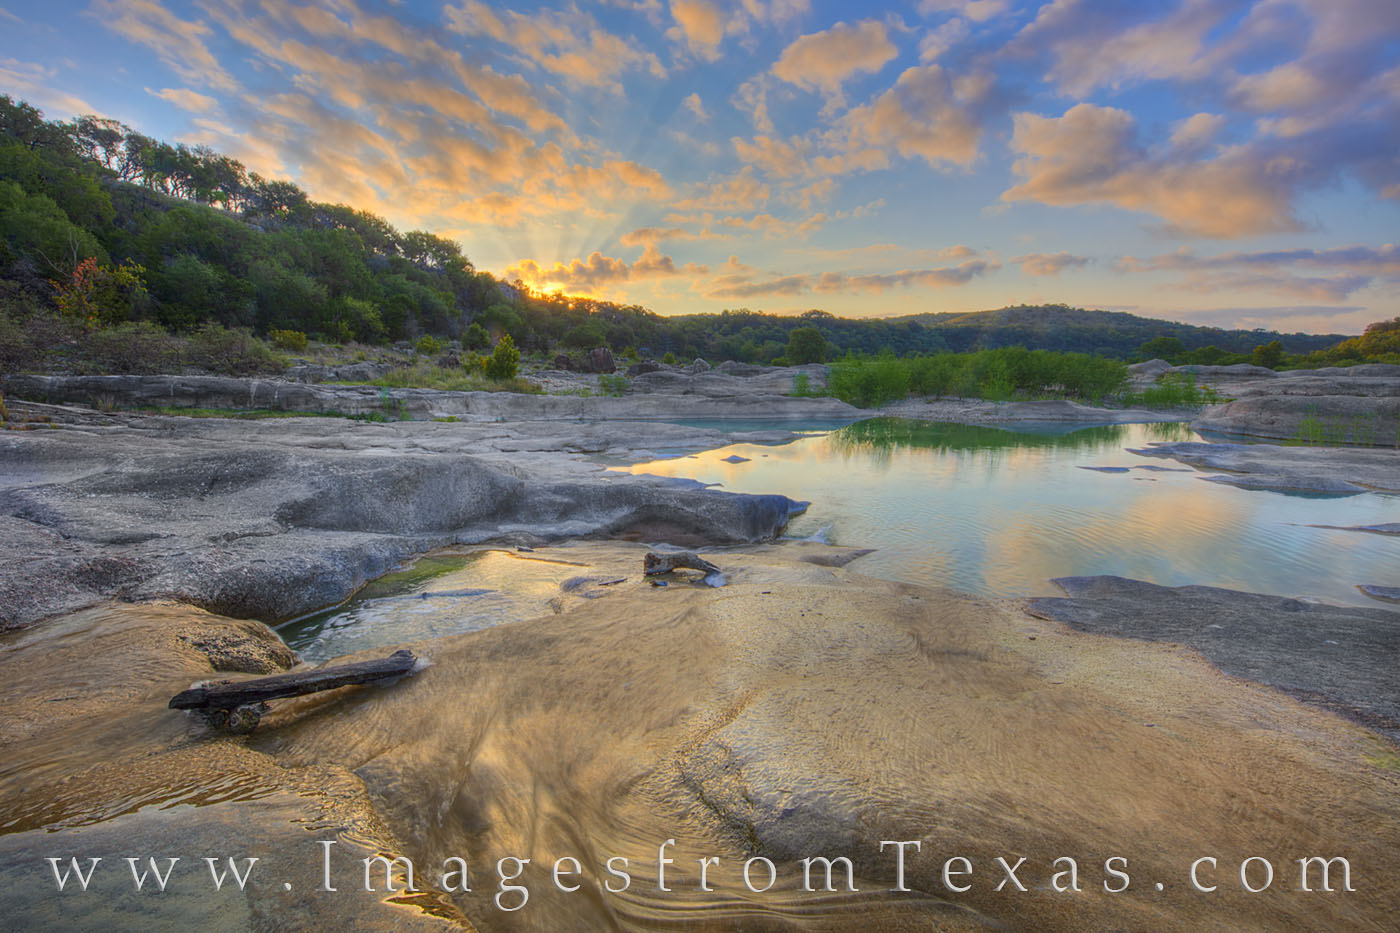 pedernales falls, pederanales river, texas hill country, state park, texas landscapes, sunrise, water, river, stream, morning, solitude, quiet, photo